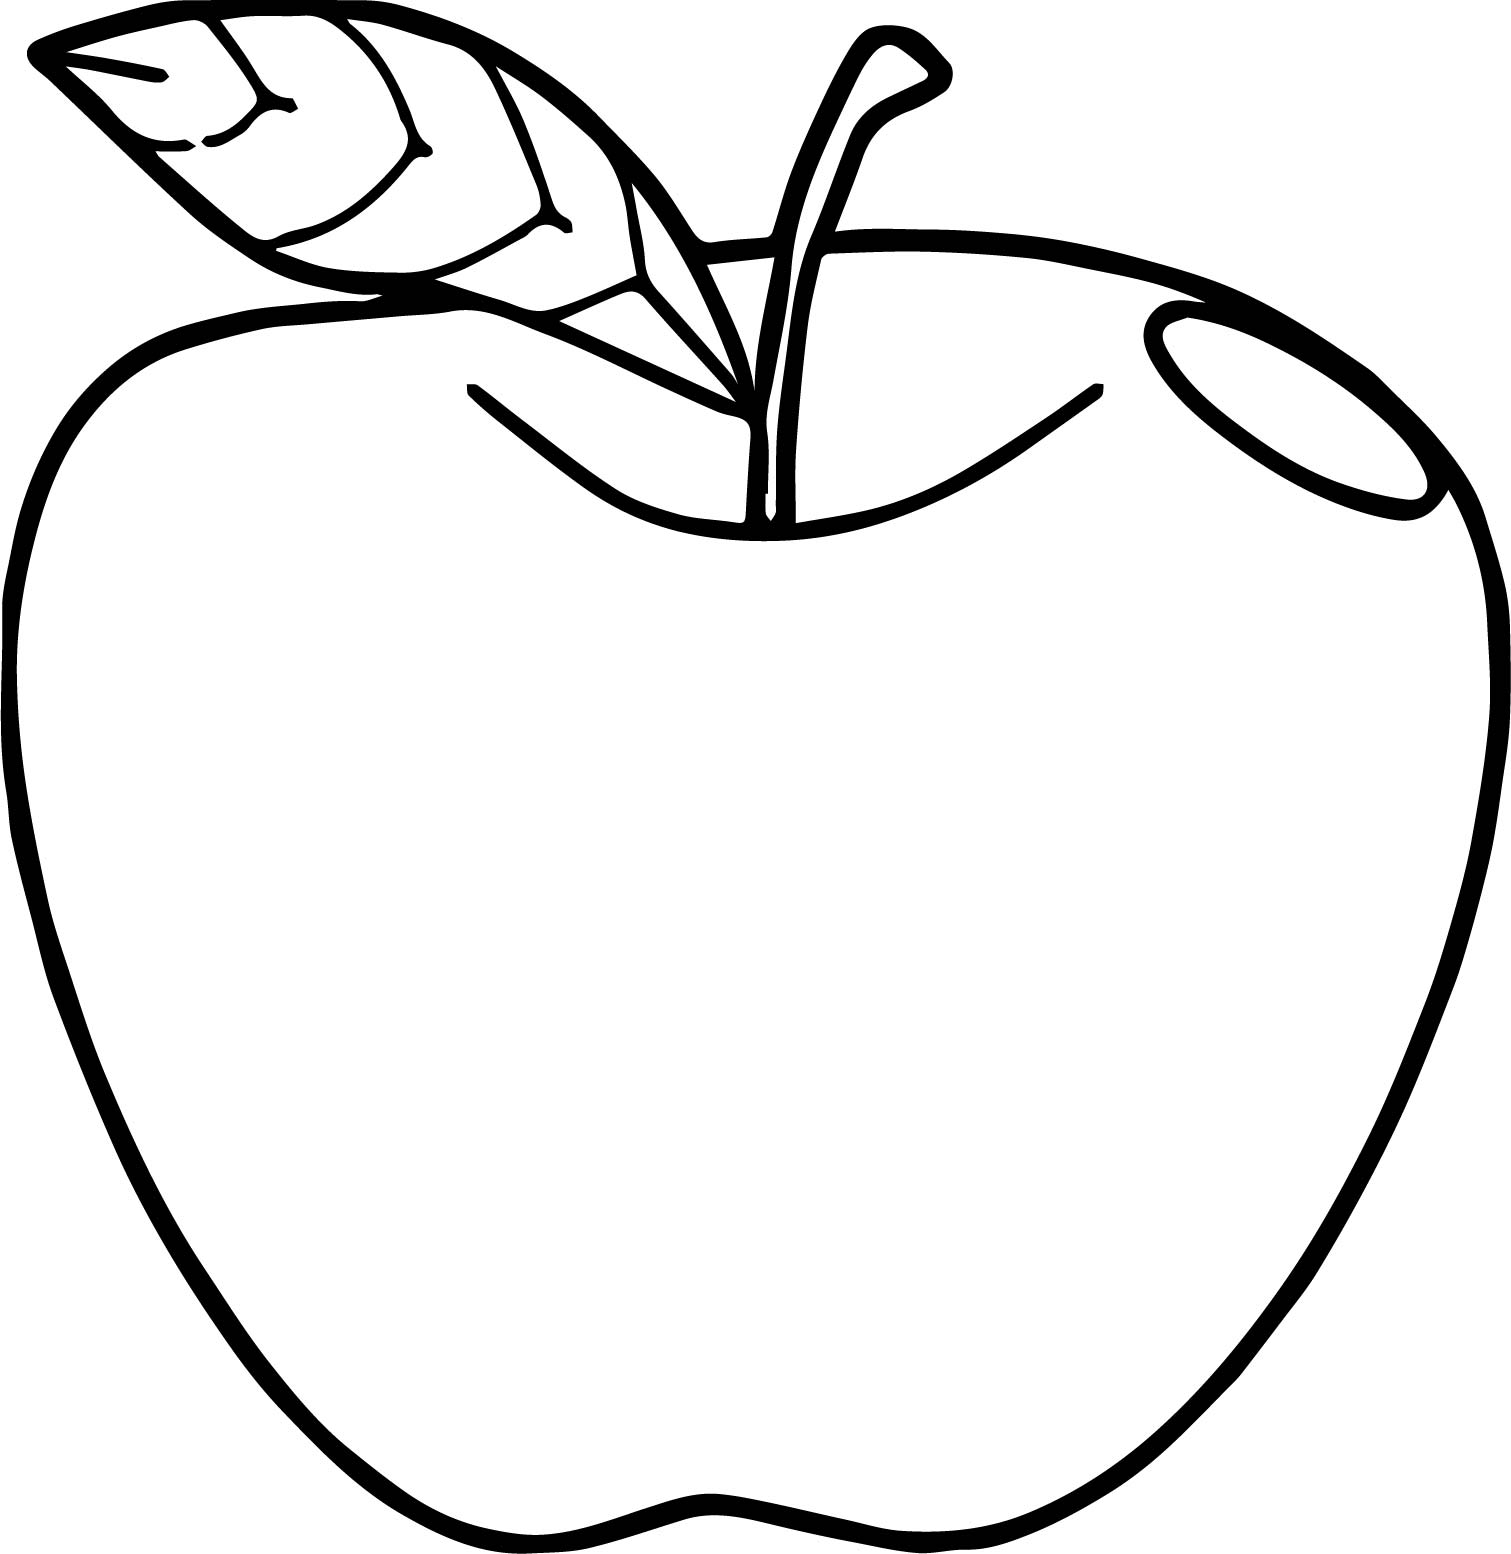 Trash pack series 2 free colouring pages for Coloring page of an apple